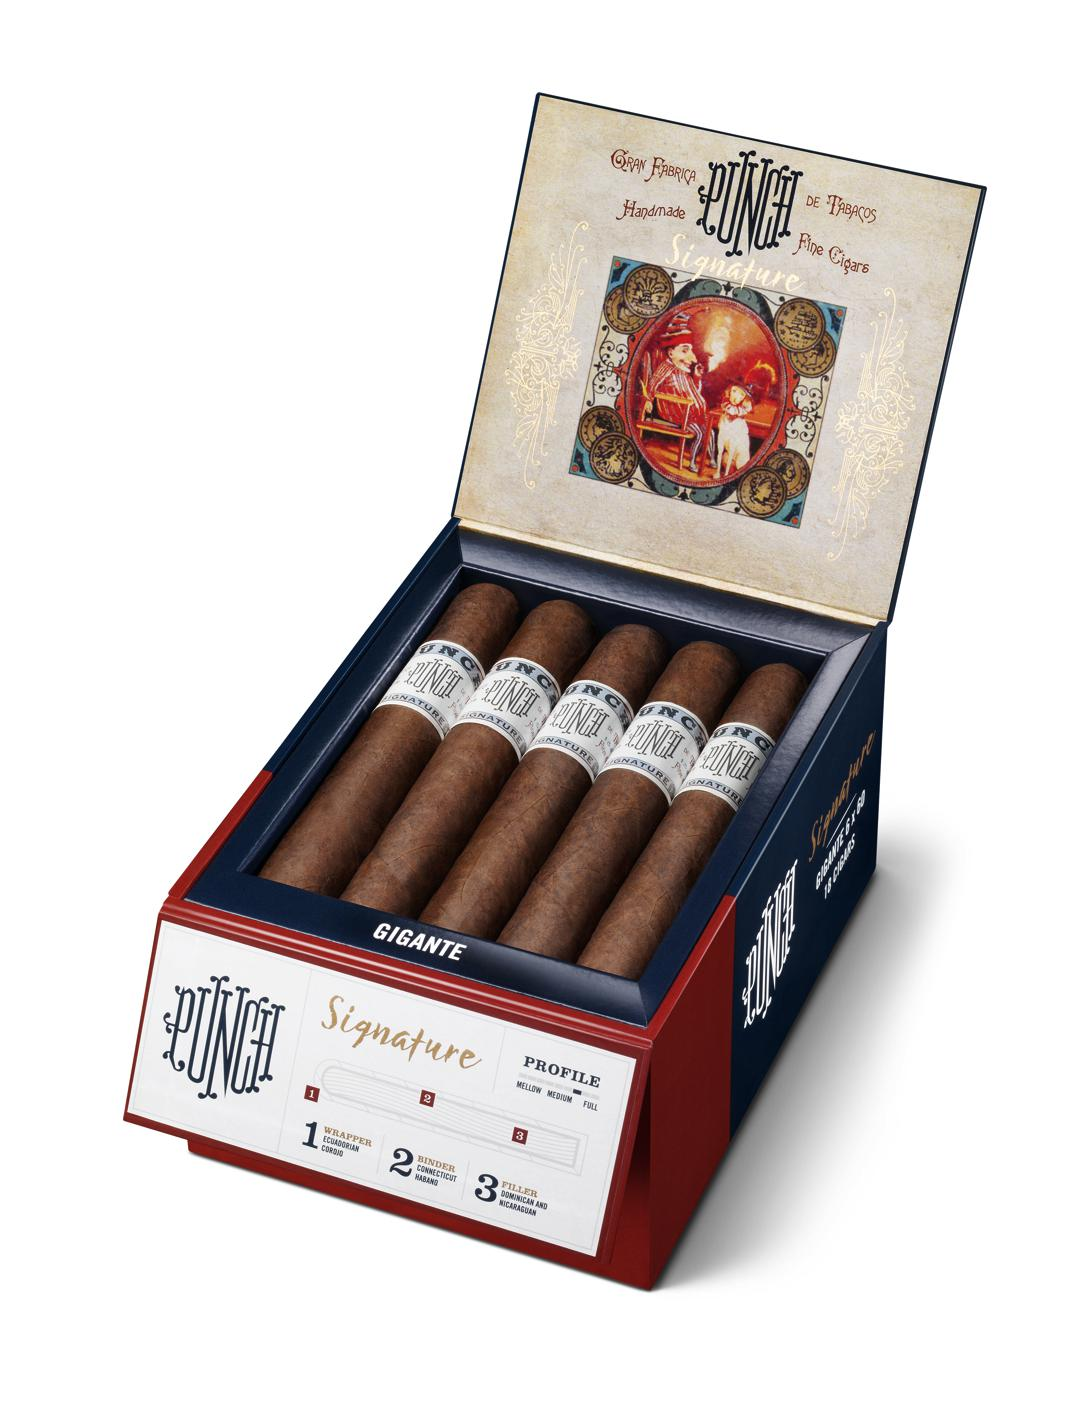 Cigar News: General Cigar Introducing Revamped Packaging for Punch Signature